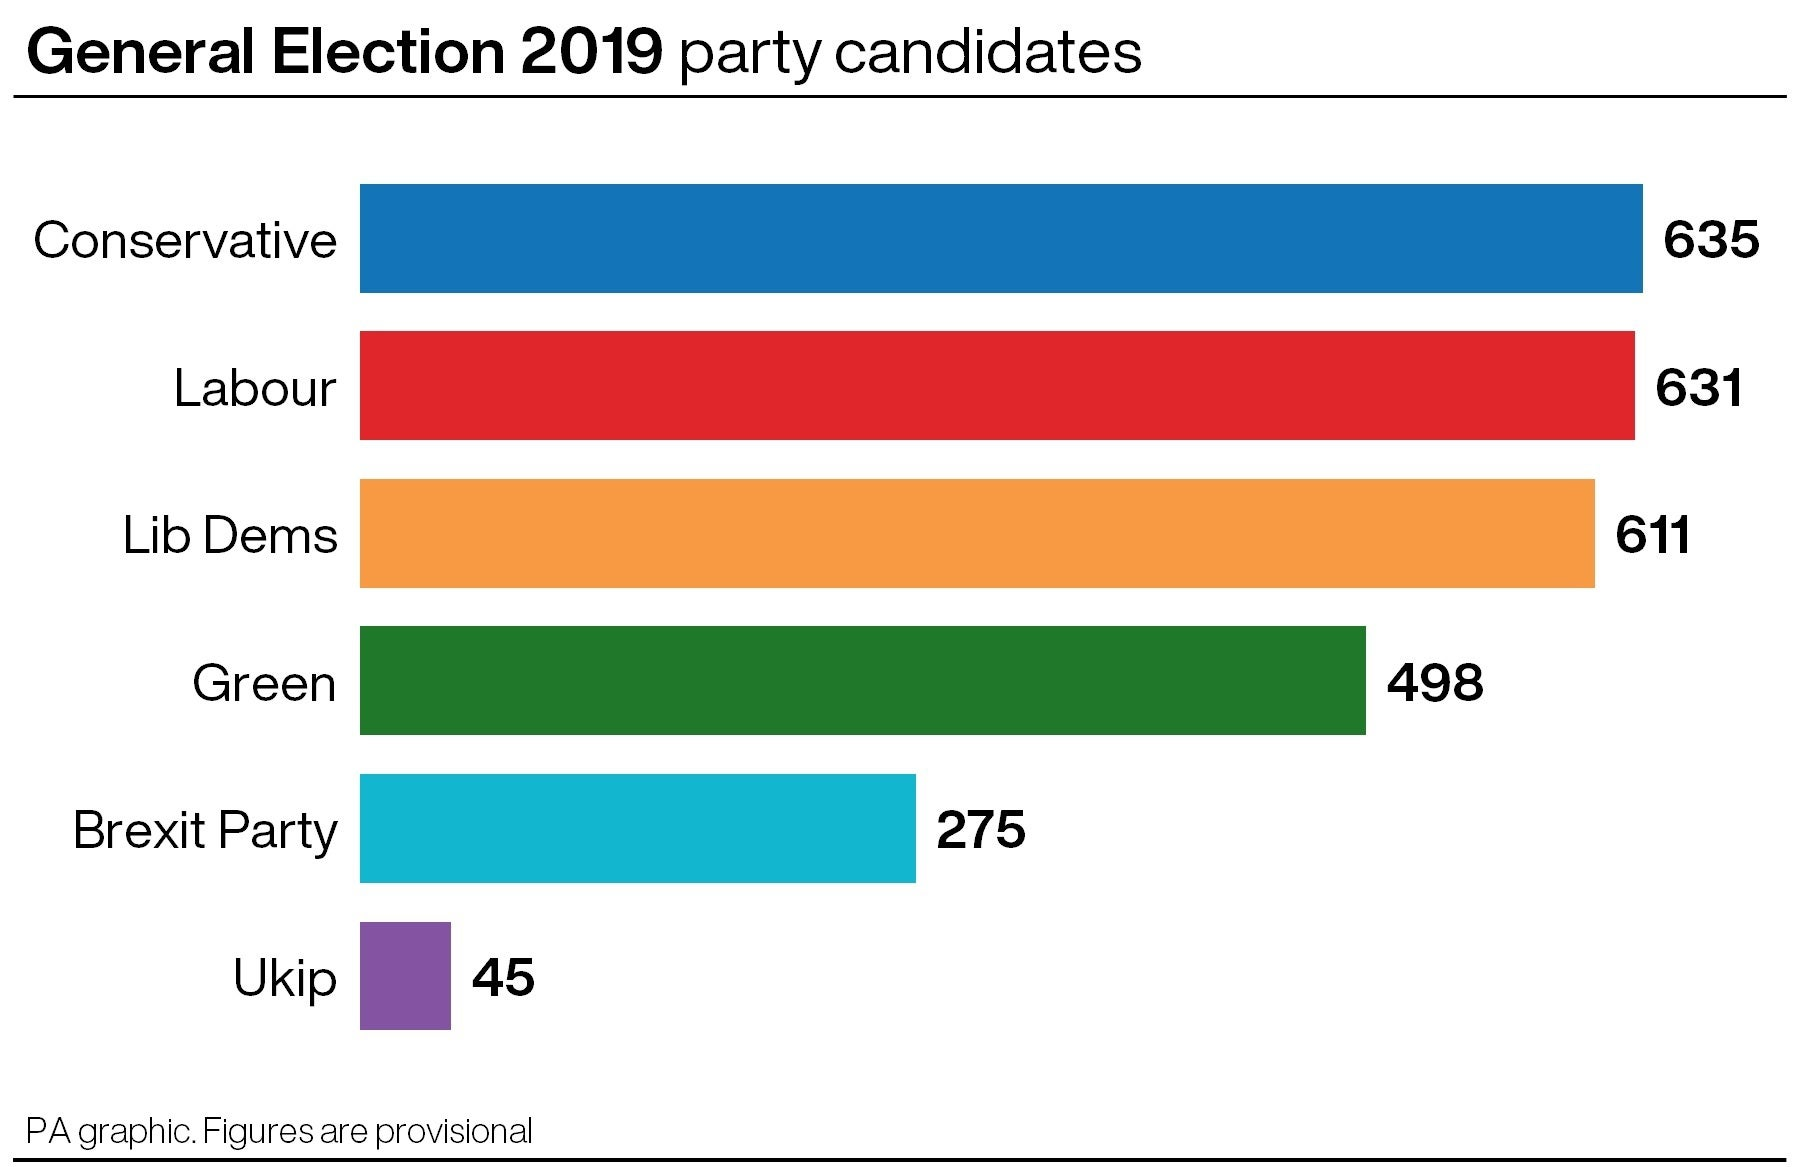 Candidates standing in the 2019 General Election